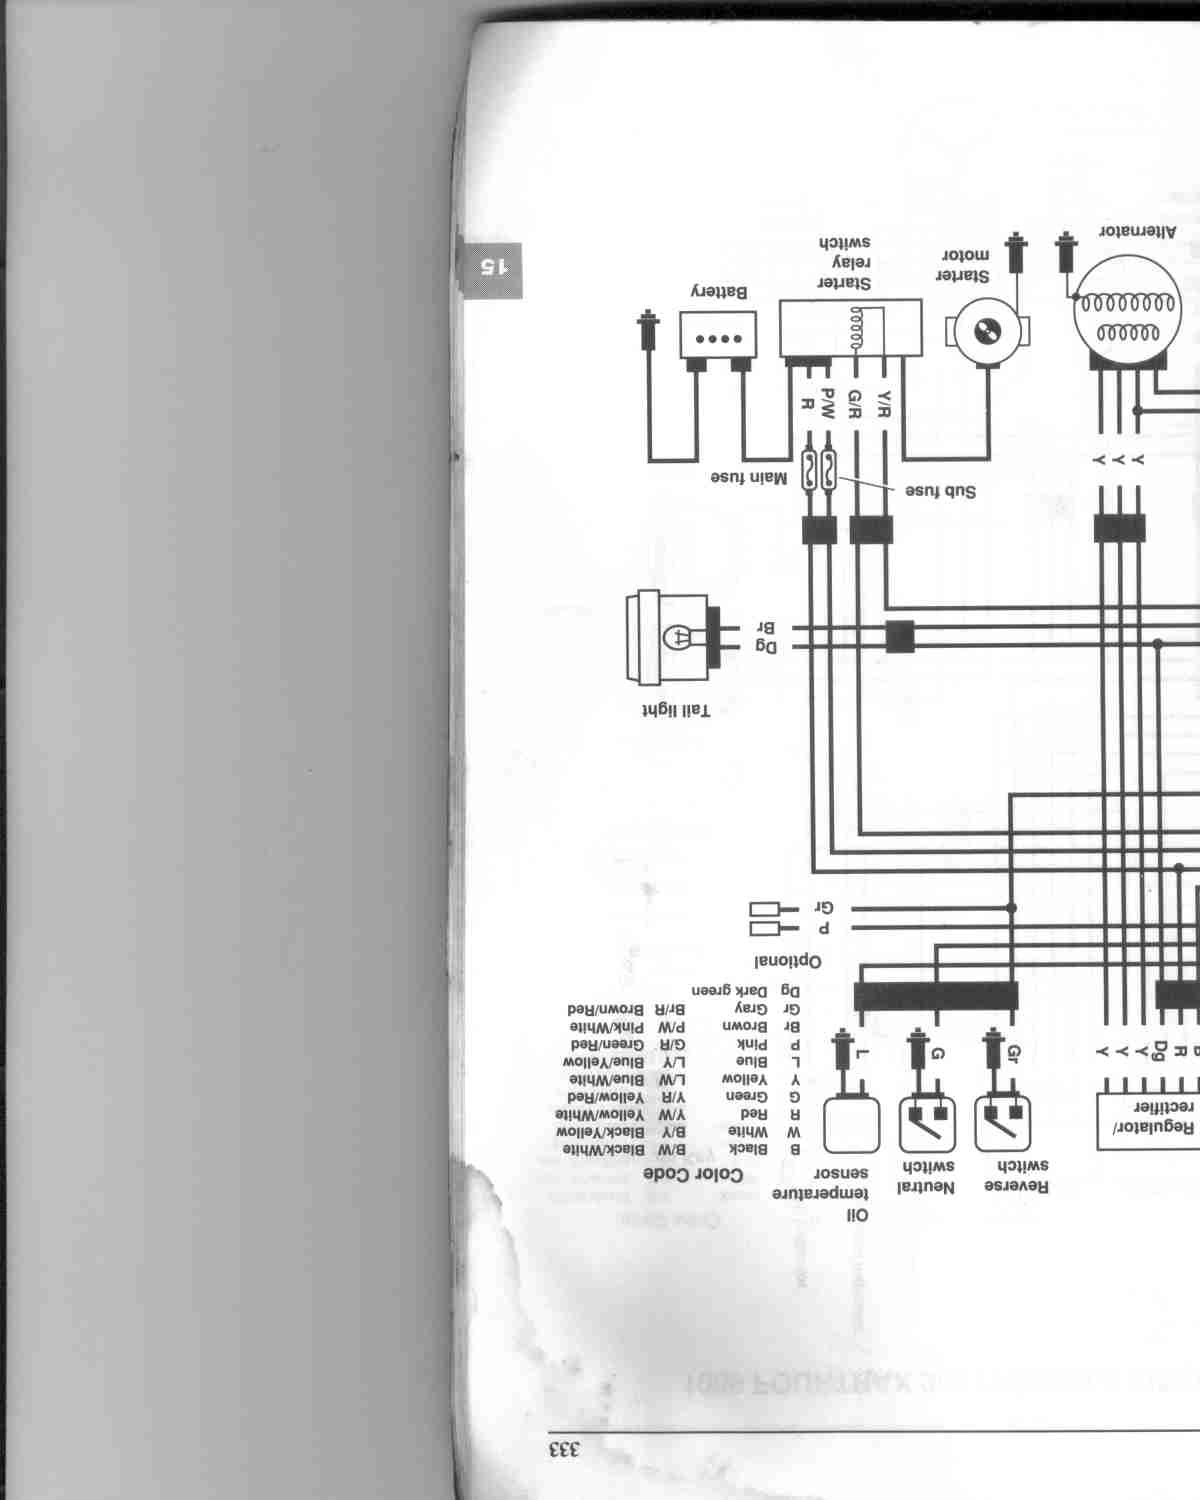 Fresh York Rooftop Unit Wiring Diagram Also Package Releaseganjinet Diagrams By Modelnumber Rtu Free Park Avenue Fuse Box